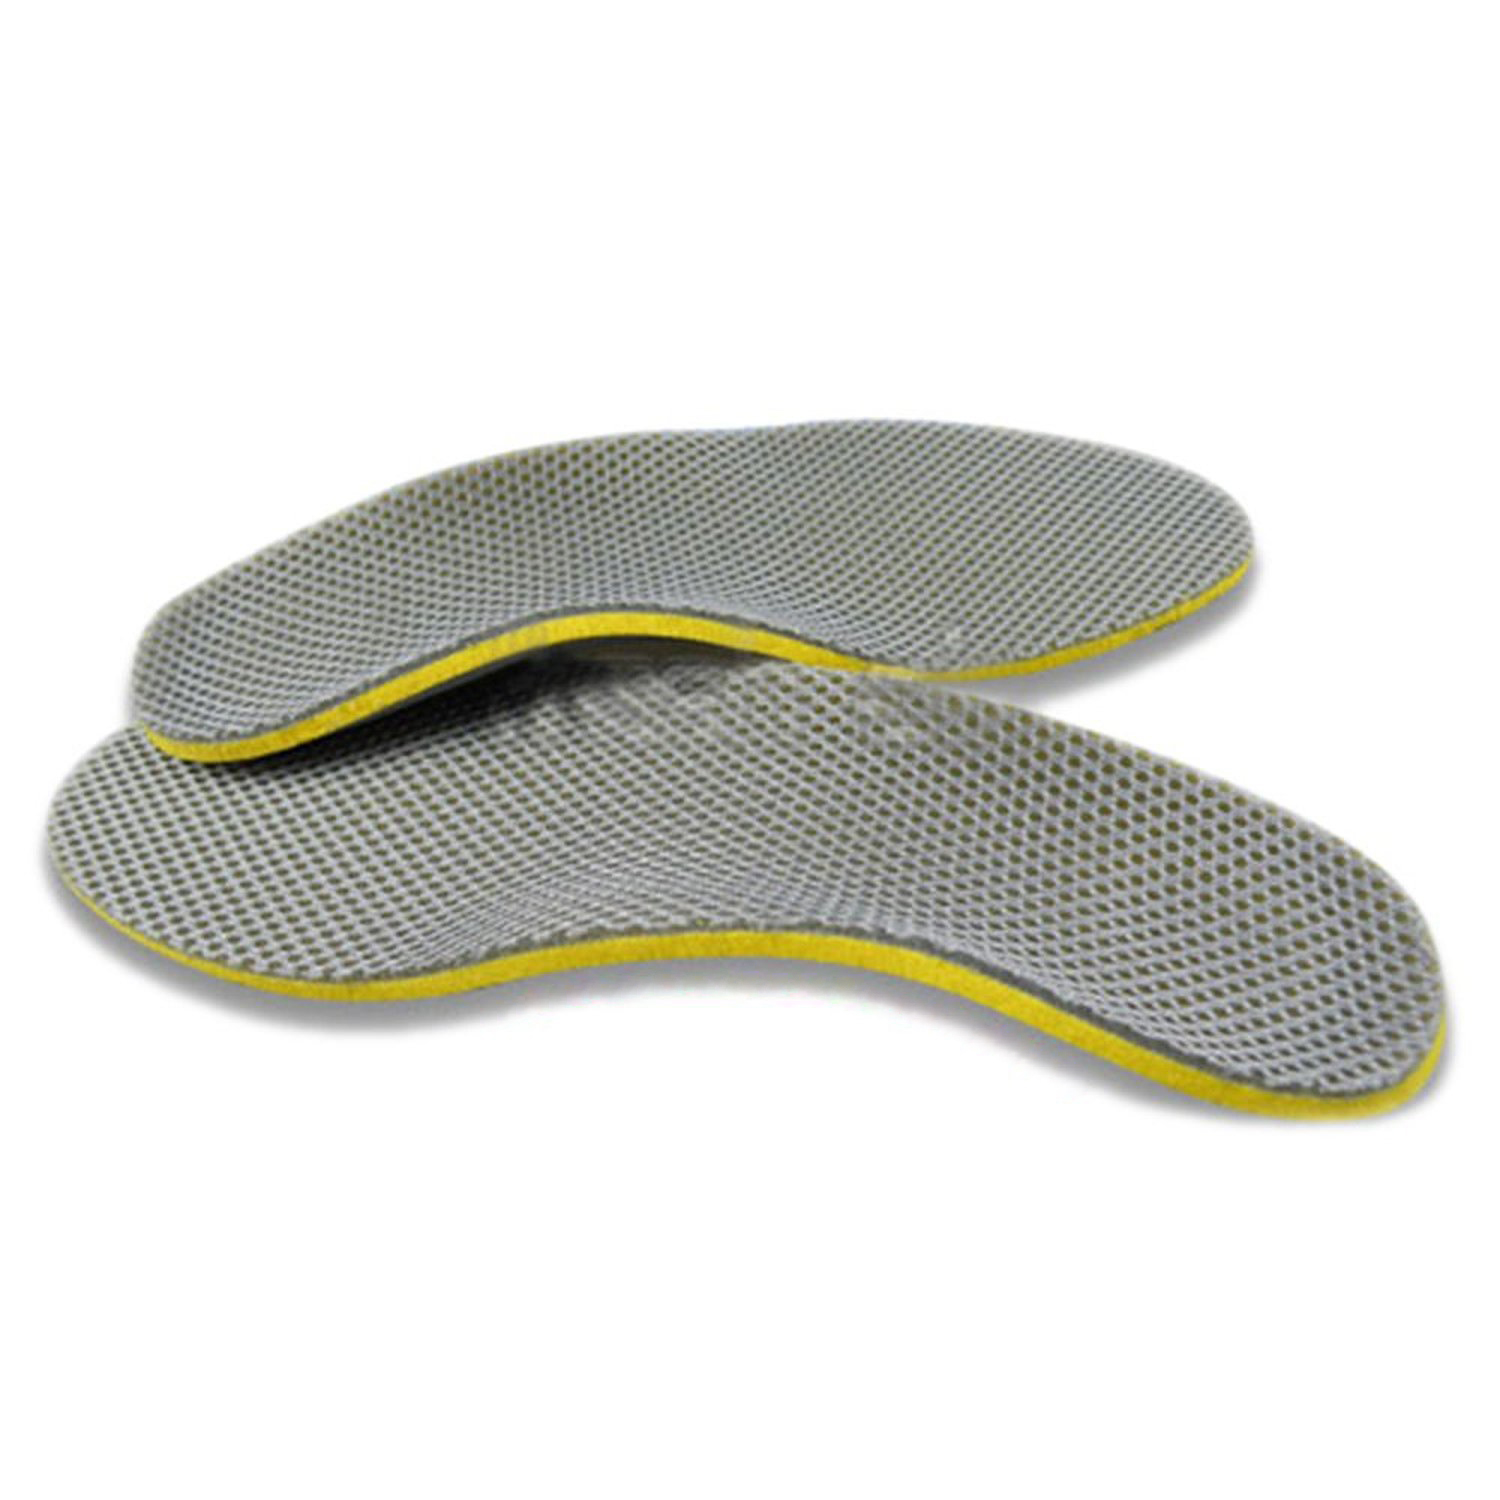 Comfortable Orthotic Shoes Insoles Inserts High Arch Support Pad L